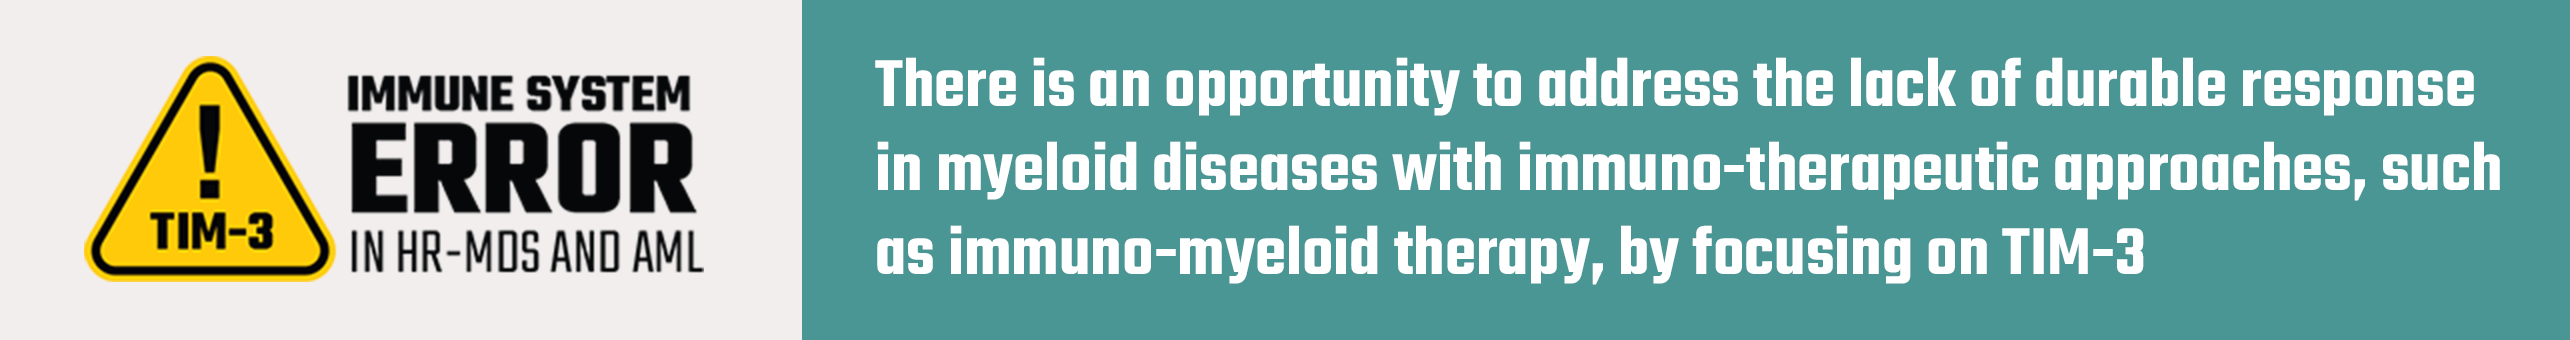 There is an opportunity to address the lack of durable response in myeloid diseases with immuno-therapeutic approaches, such as immuno-myeloid therapy, by focusing on TIM-3